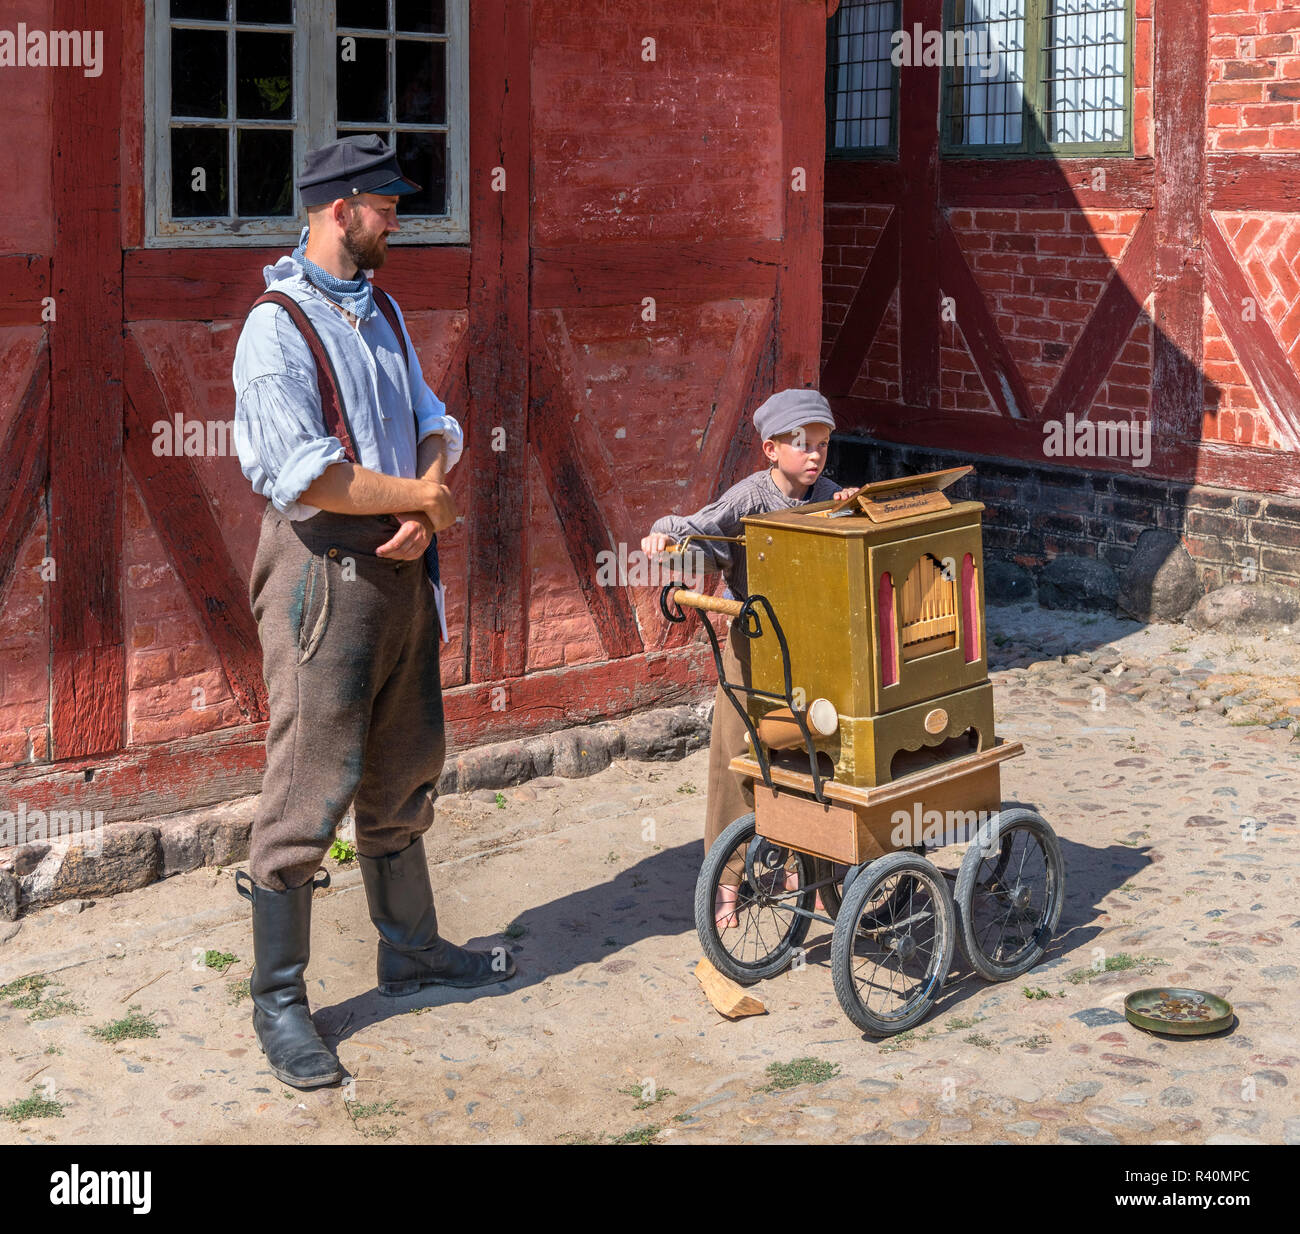 Man and young boy in period costume playing barrel organ, Market Square (Torvet), The Old Town (Den Gamle By), an open air museum in Aarhus, Denmark - Stock Image